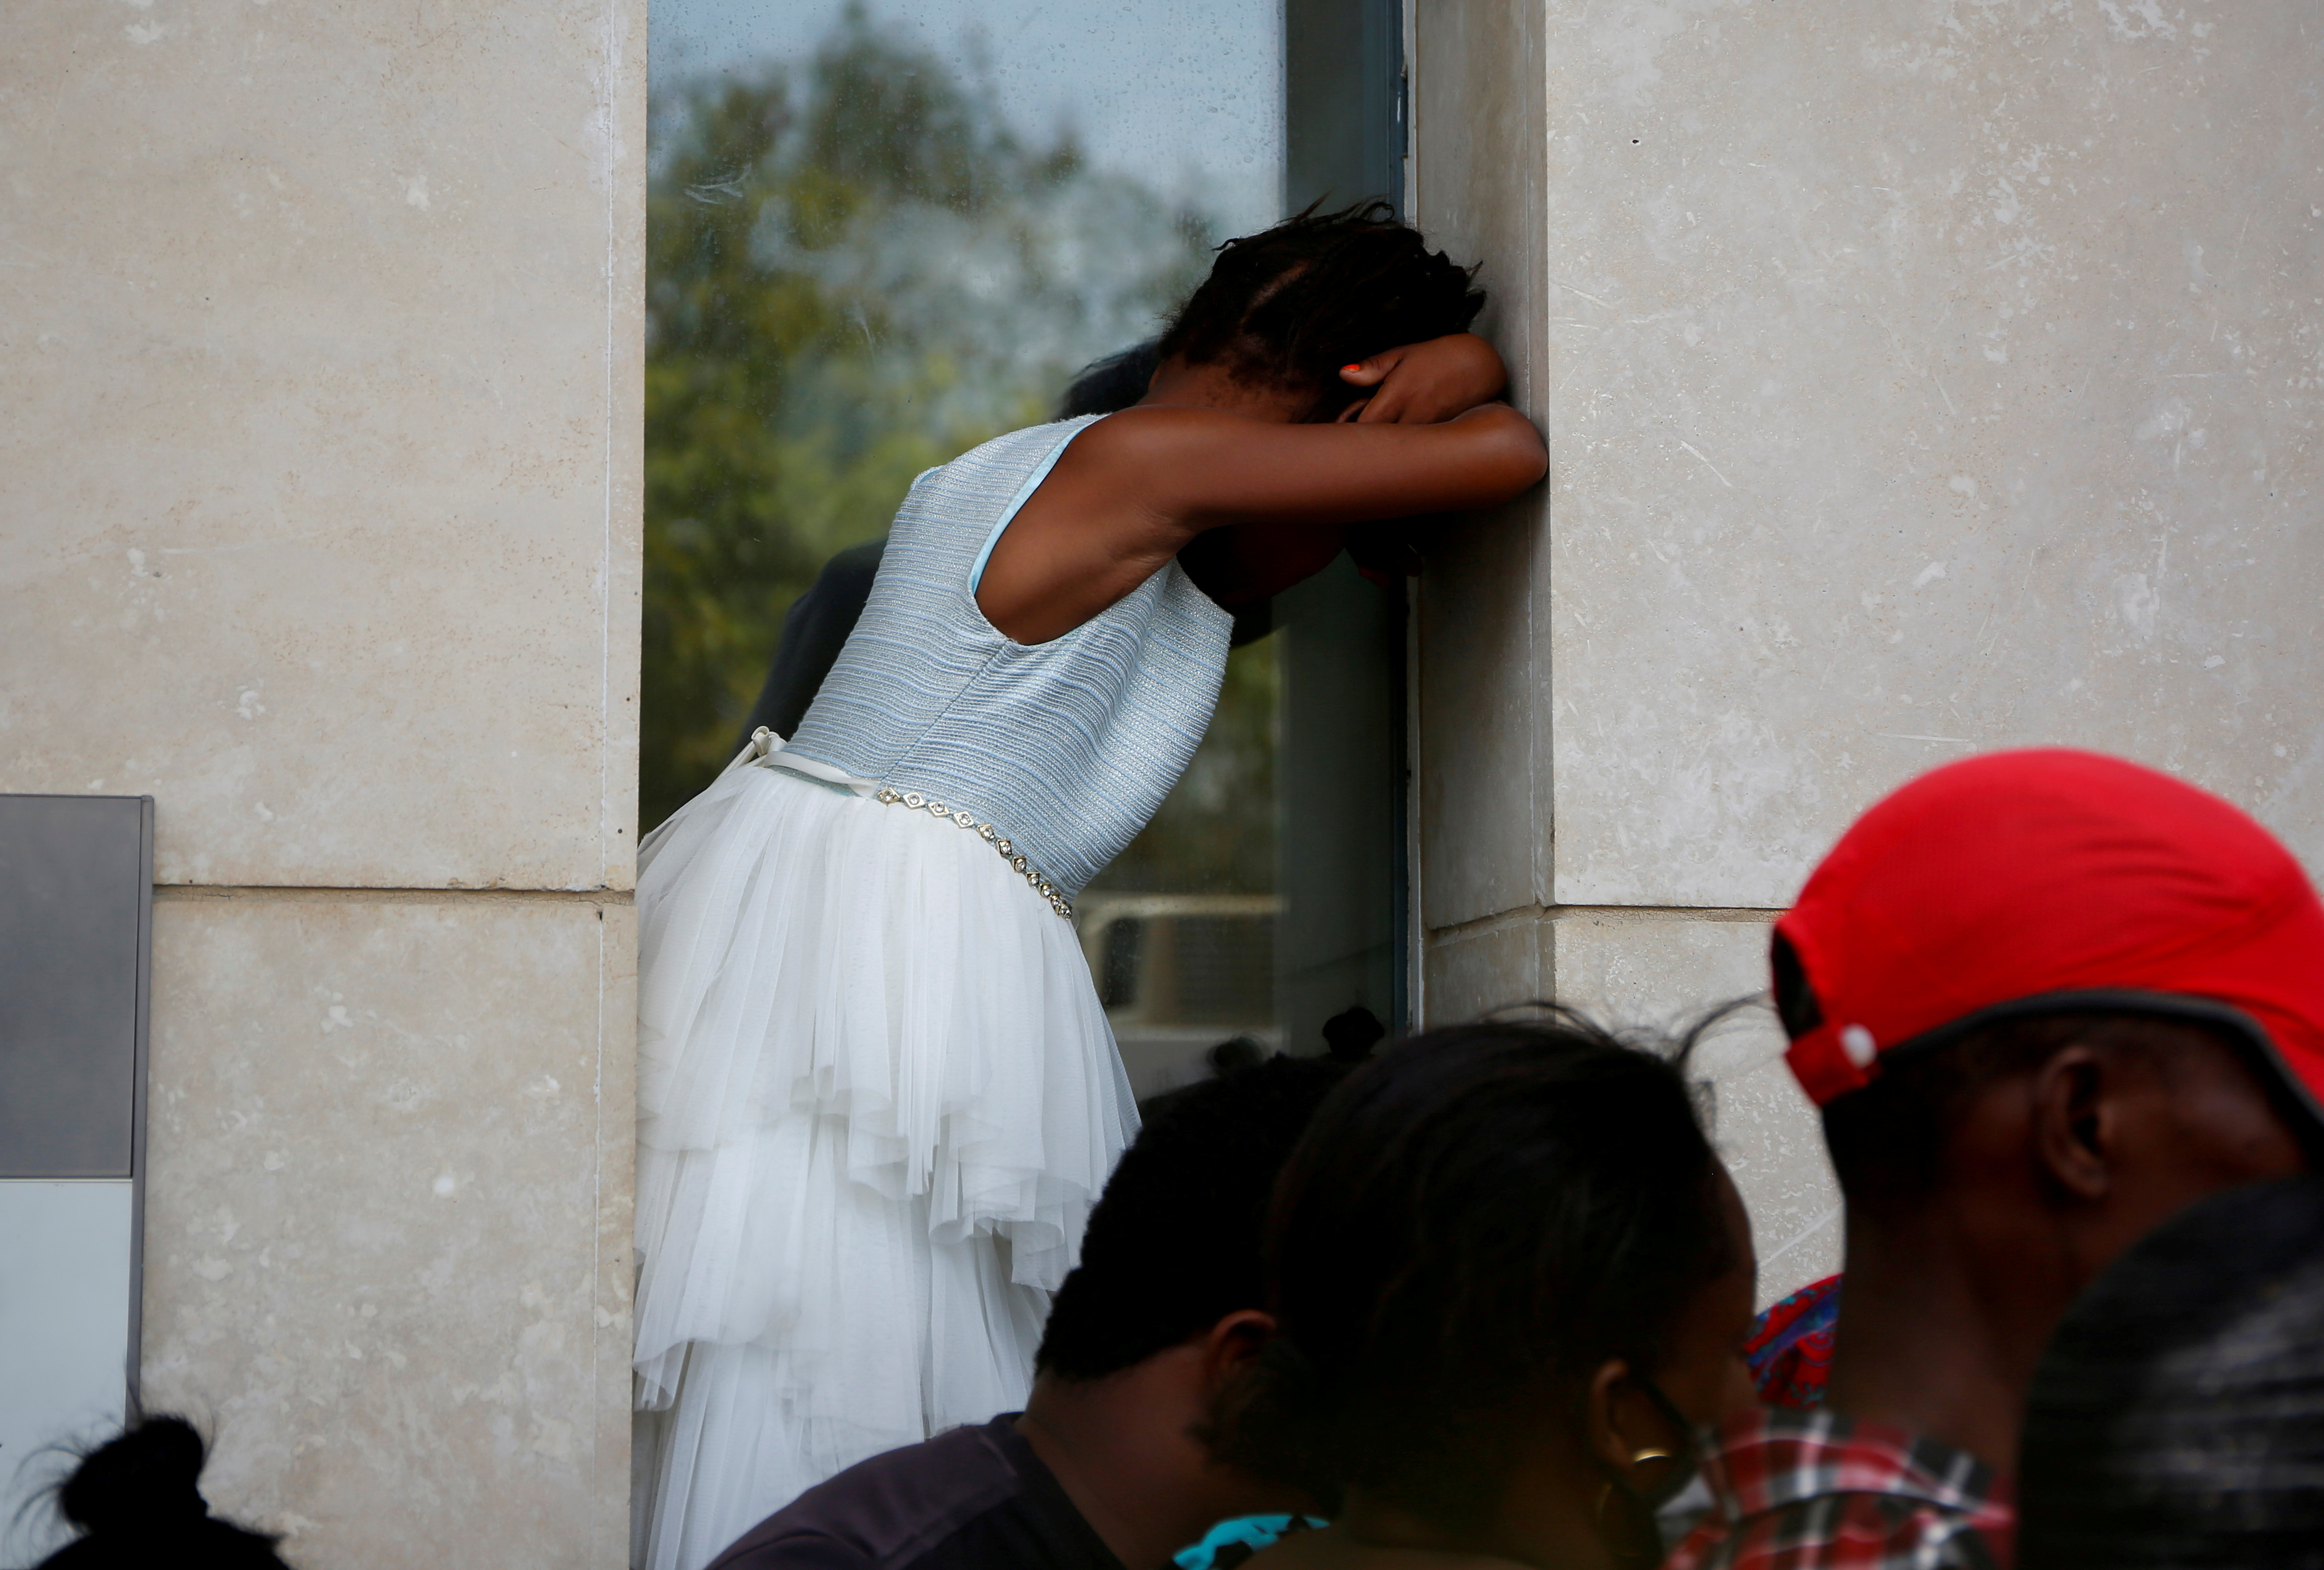 Haitians gather outside the U.S. Embassy after the assassination of President Jovenel Moise, in Port-au-Prince, Haiti July 9, 2021. REUTERS/Estailove St-Val/File Photo